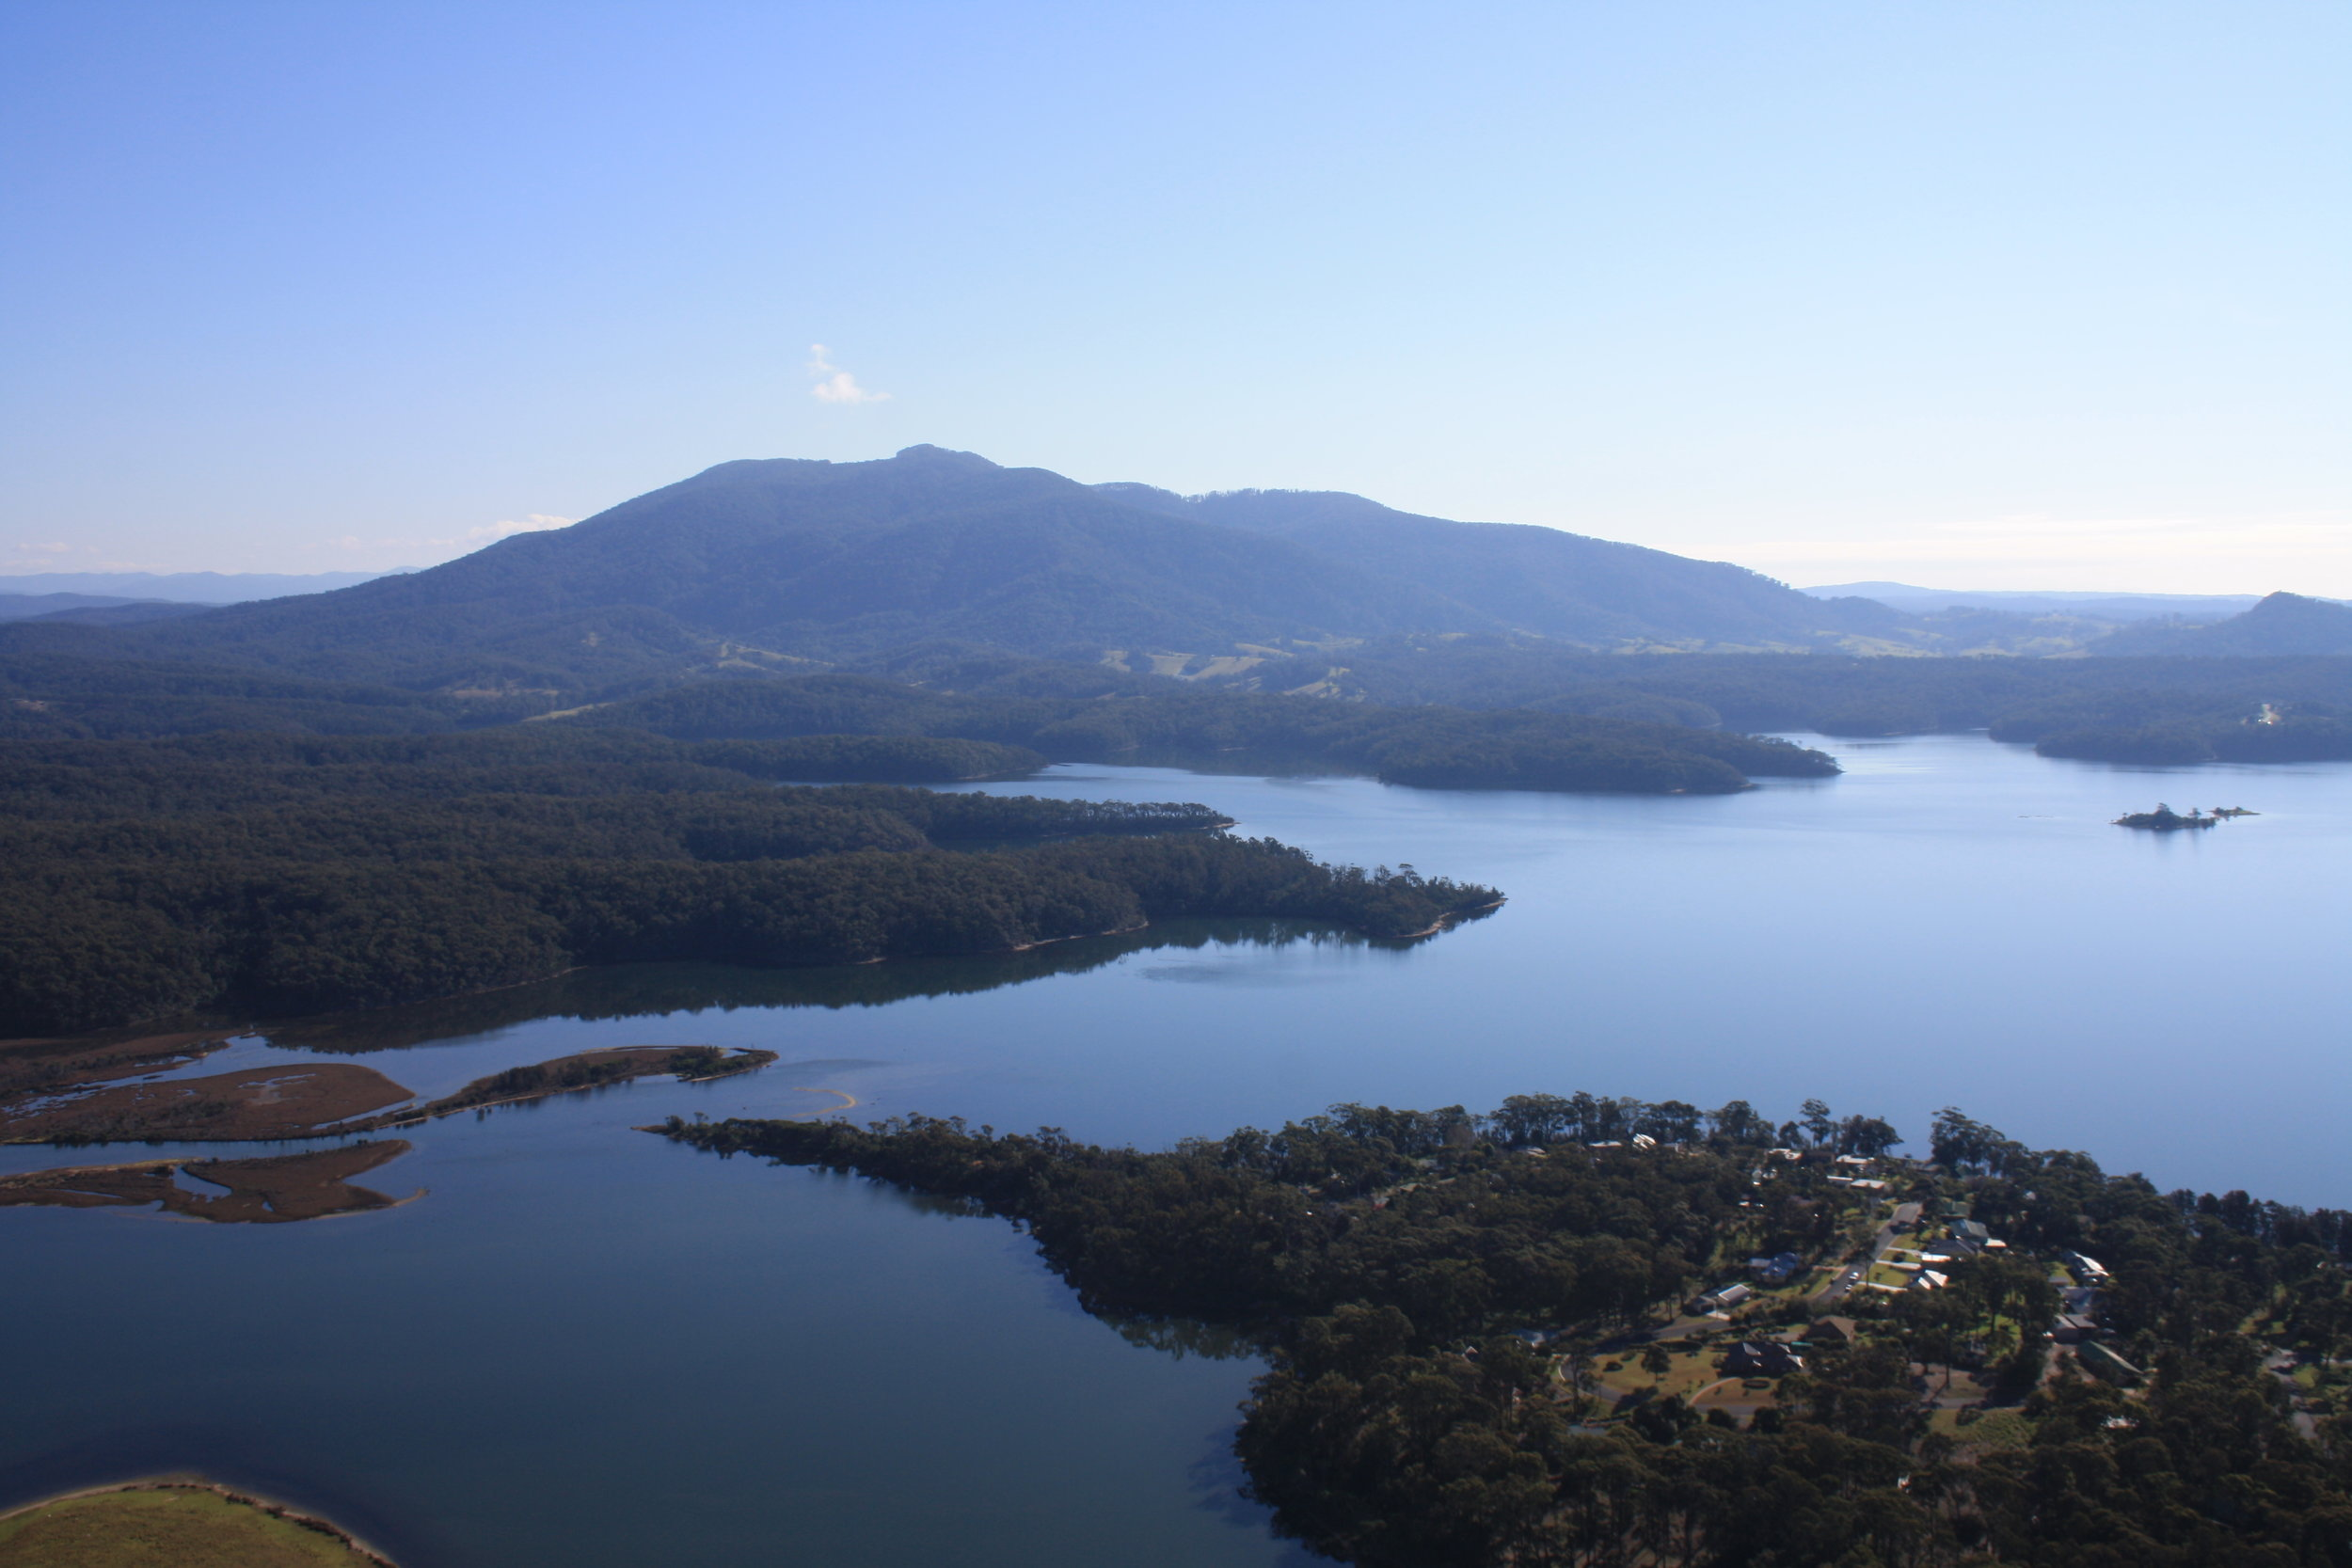 Wallaga Lake and Gulaga (Mount Dromedary)